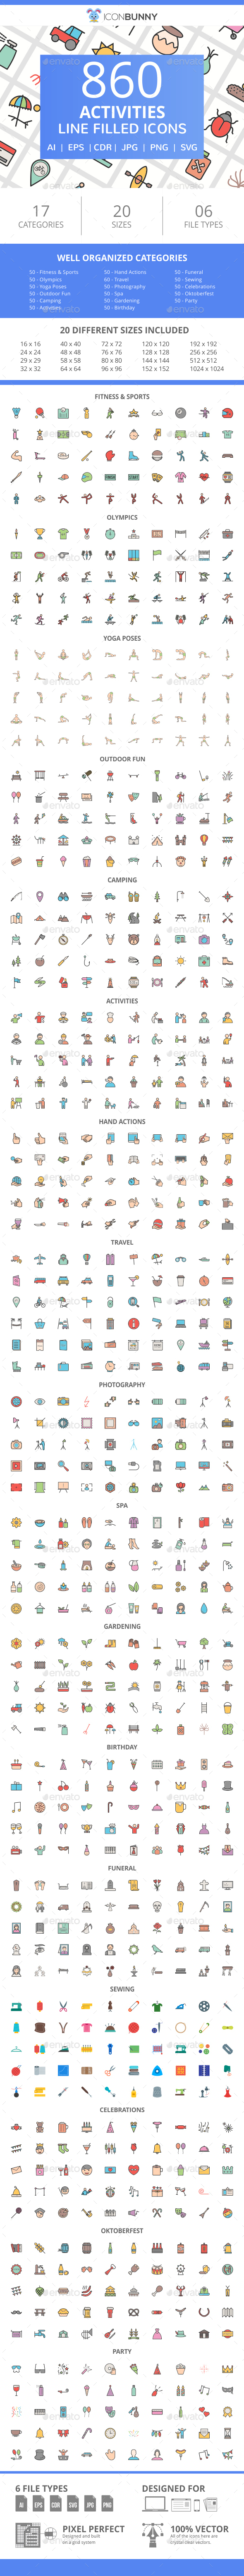 860 Activities Filled Line Icons - Icons